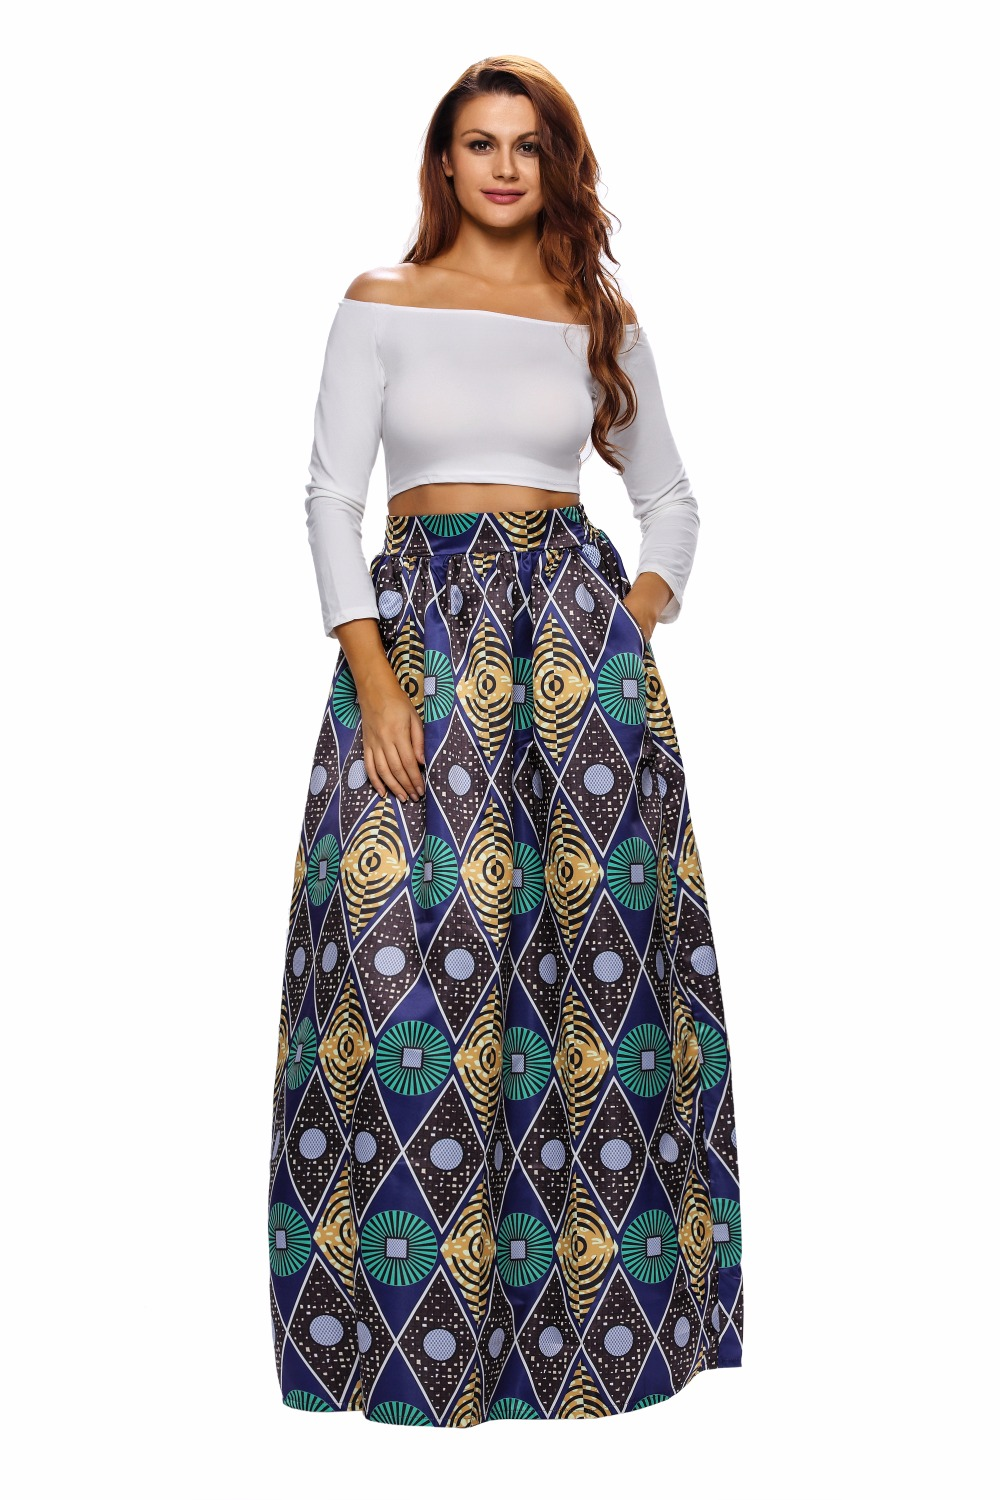 XXL Plus Women Skirt Hign Waist African Clothing Traditional Chic Circle Diamond African Print Maxi Skirt cheap clothes china